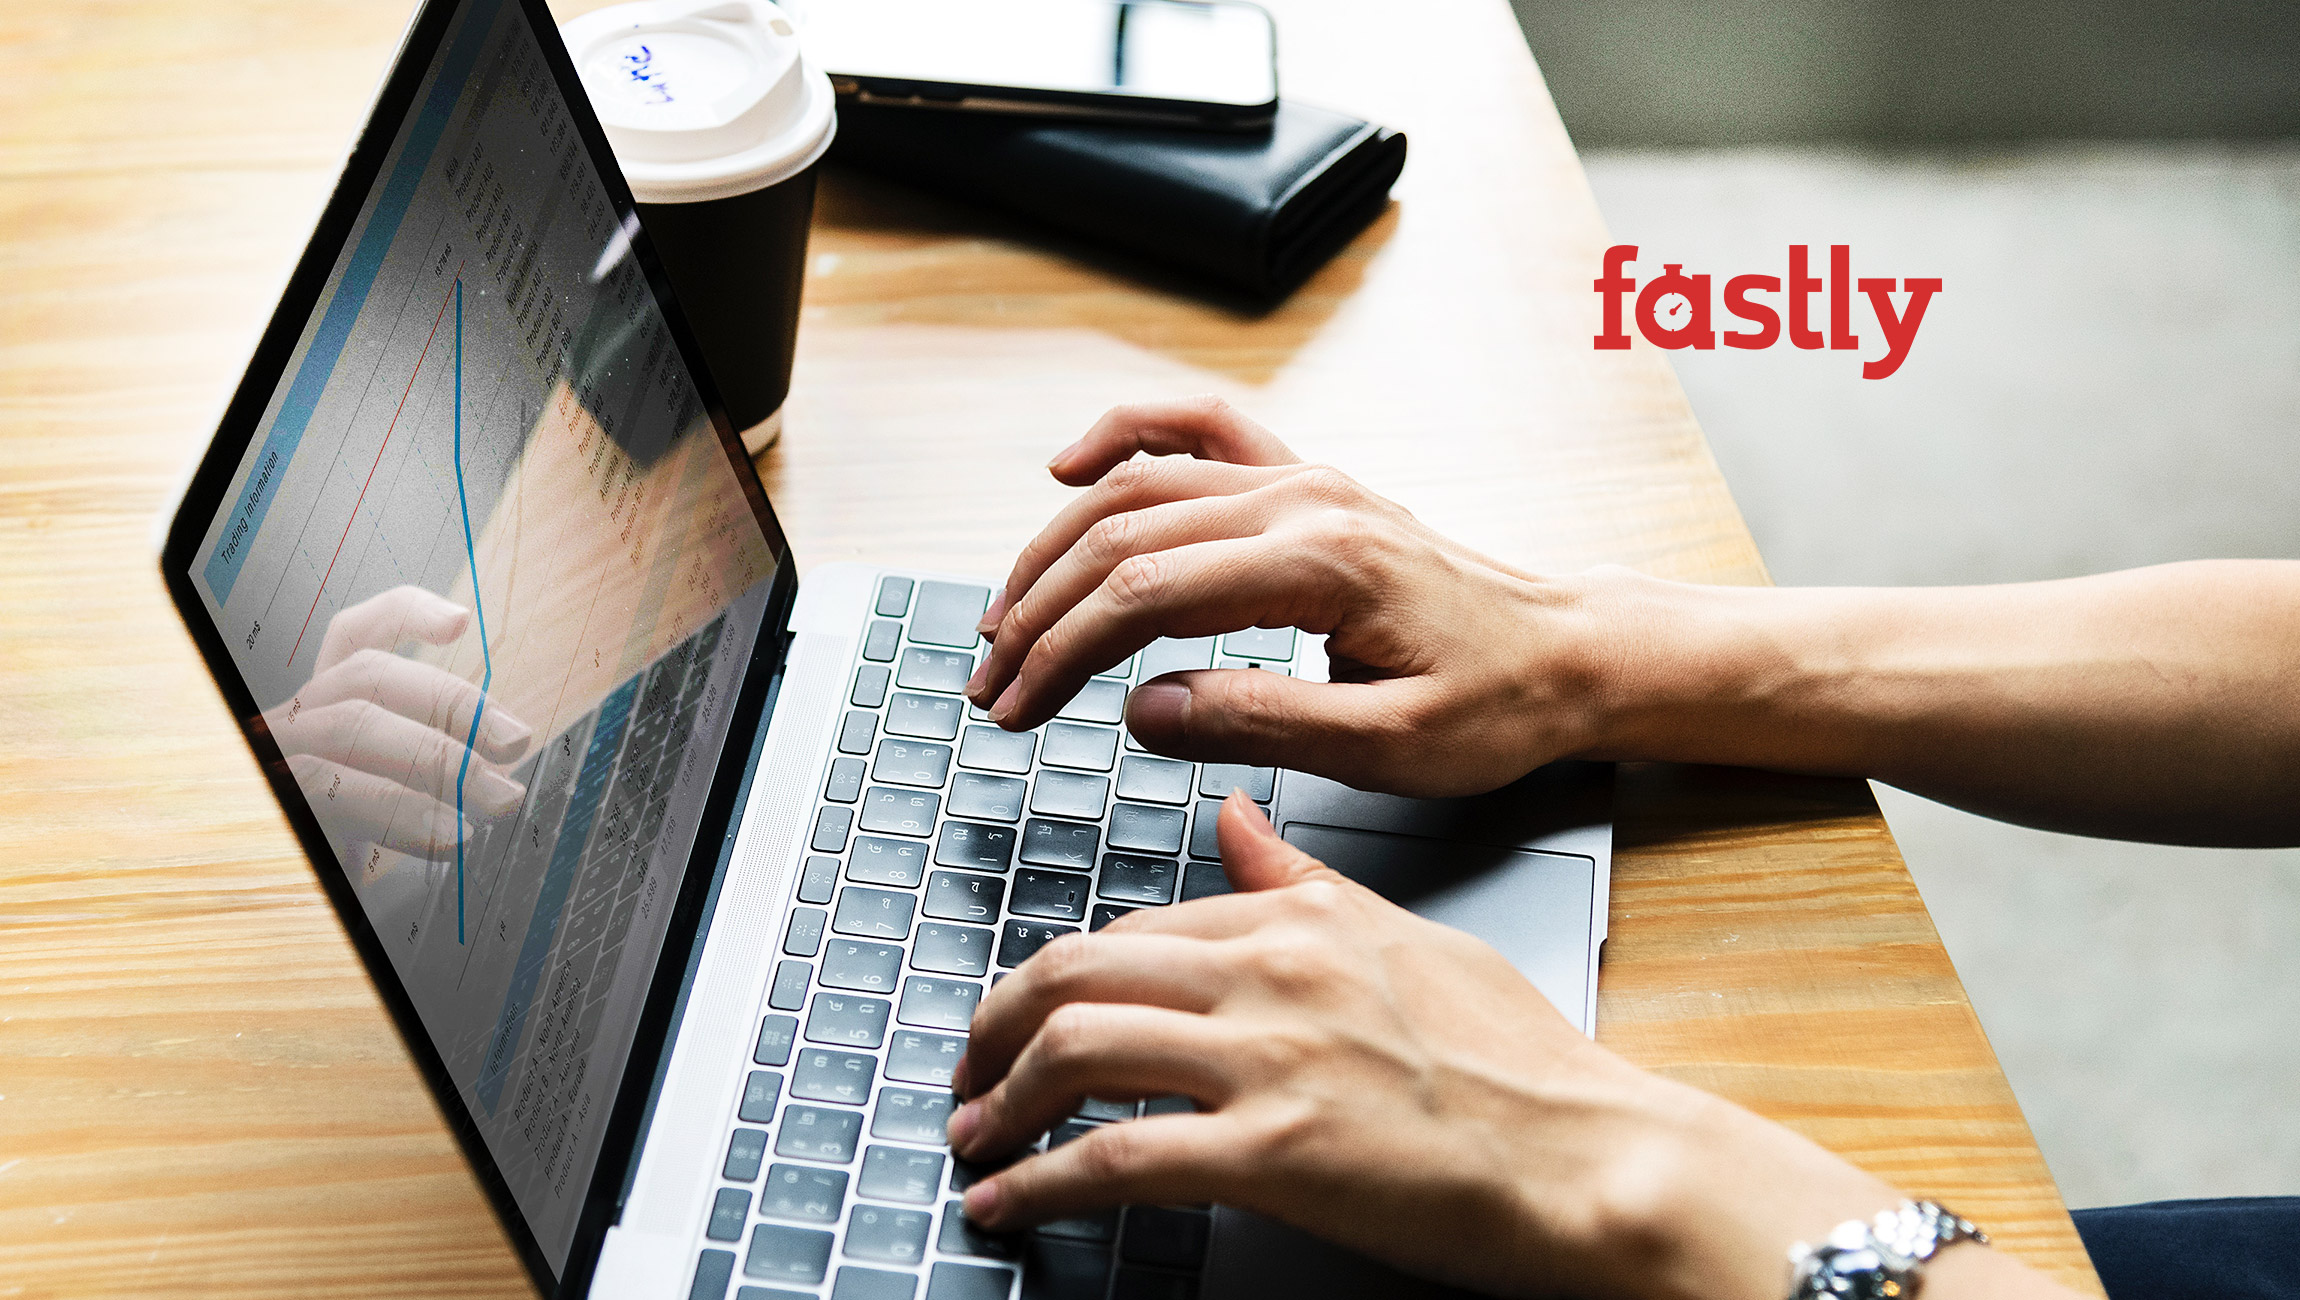 Fastly Offers First Partner Edge Cloud-Based Content Delivery Solution on Google Cloud Marketplace